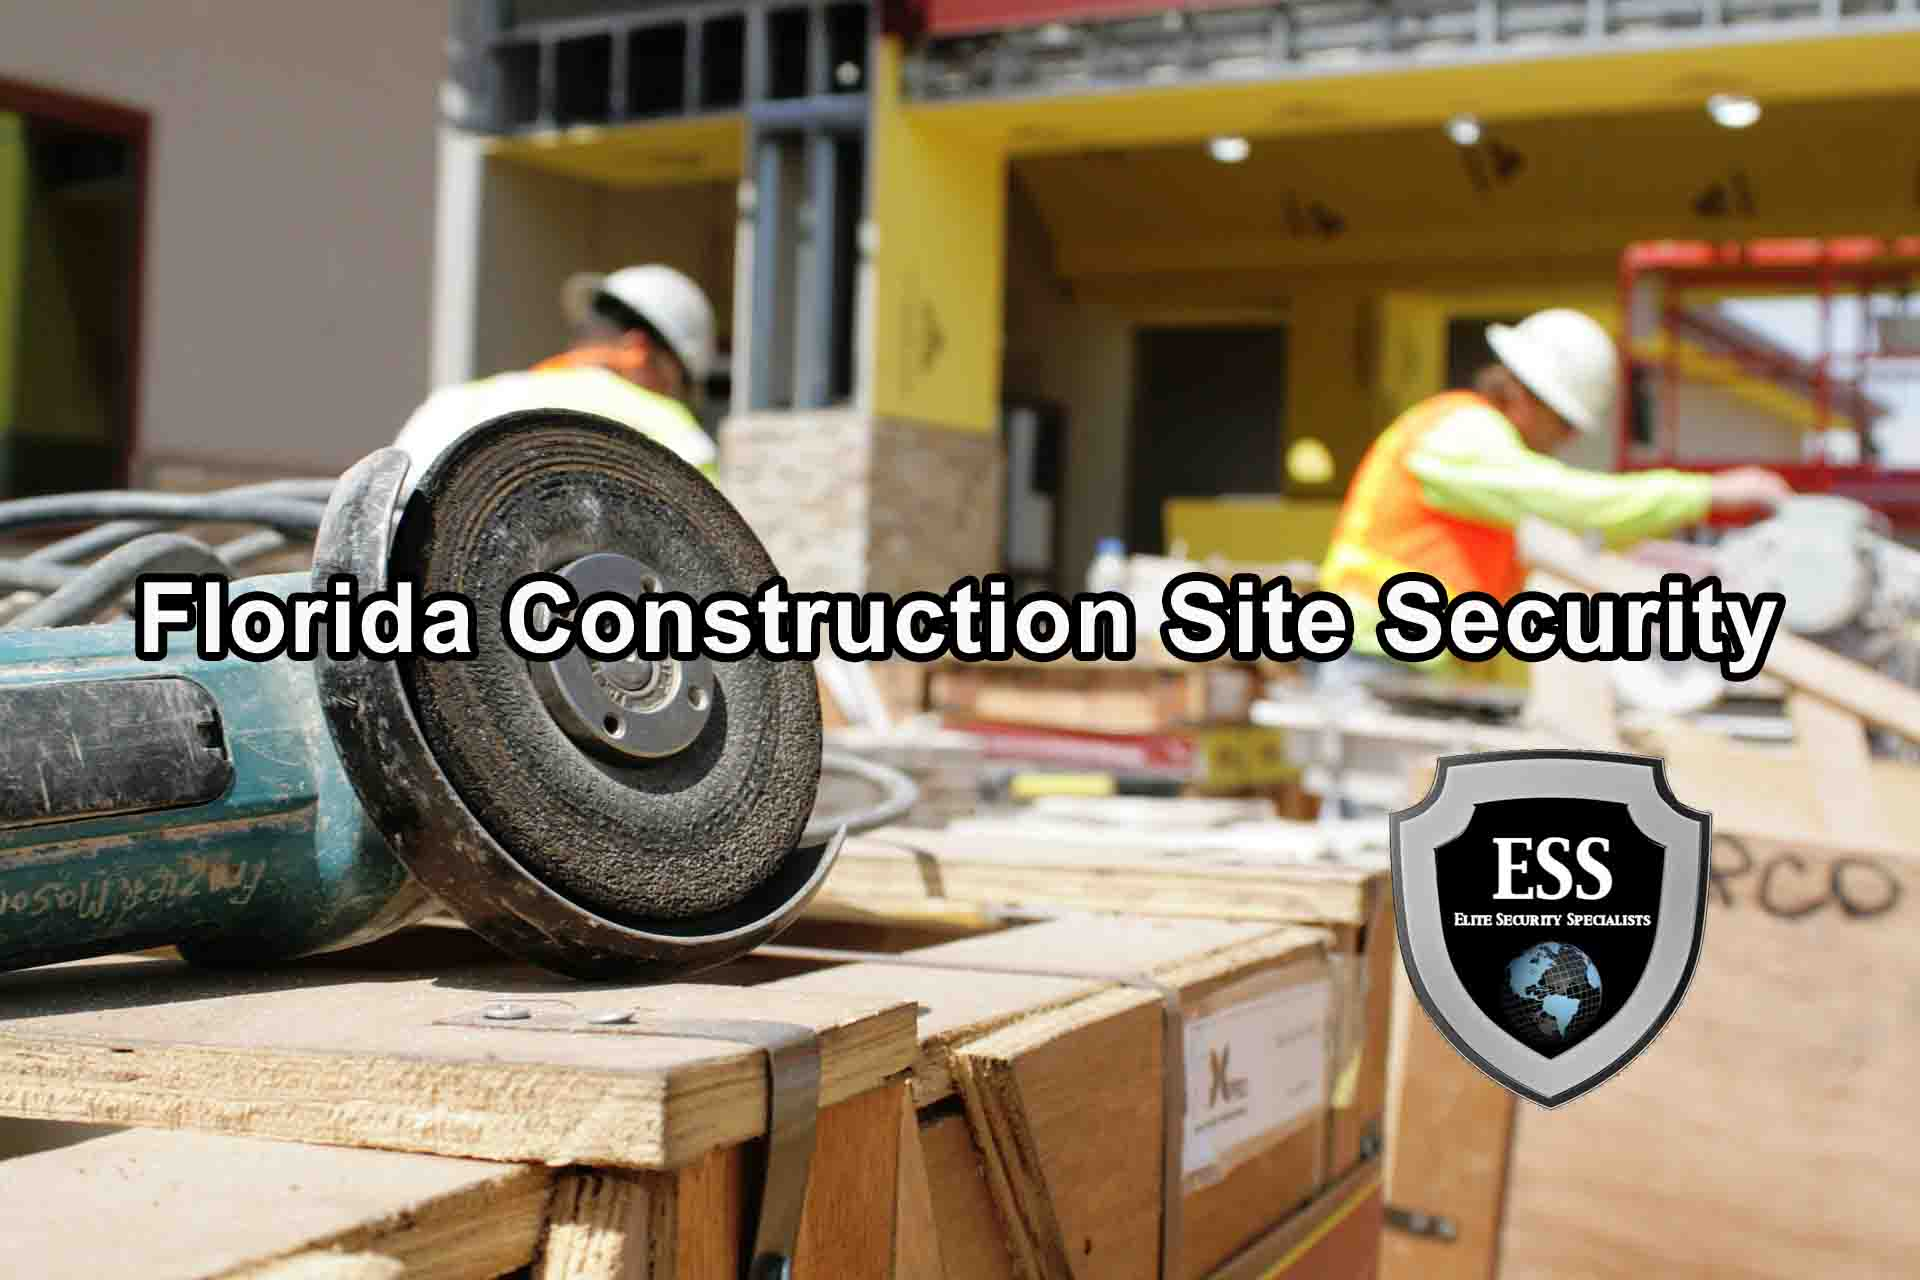 Florida Construction Site Security